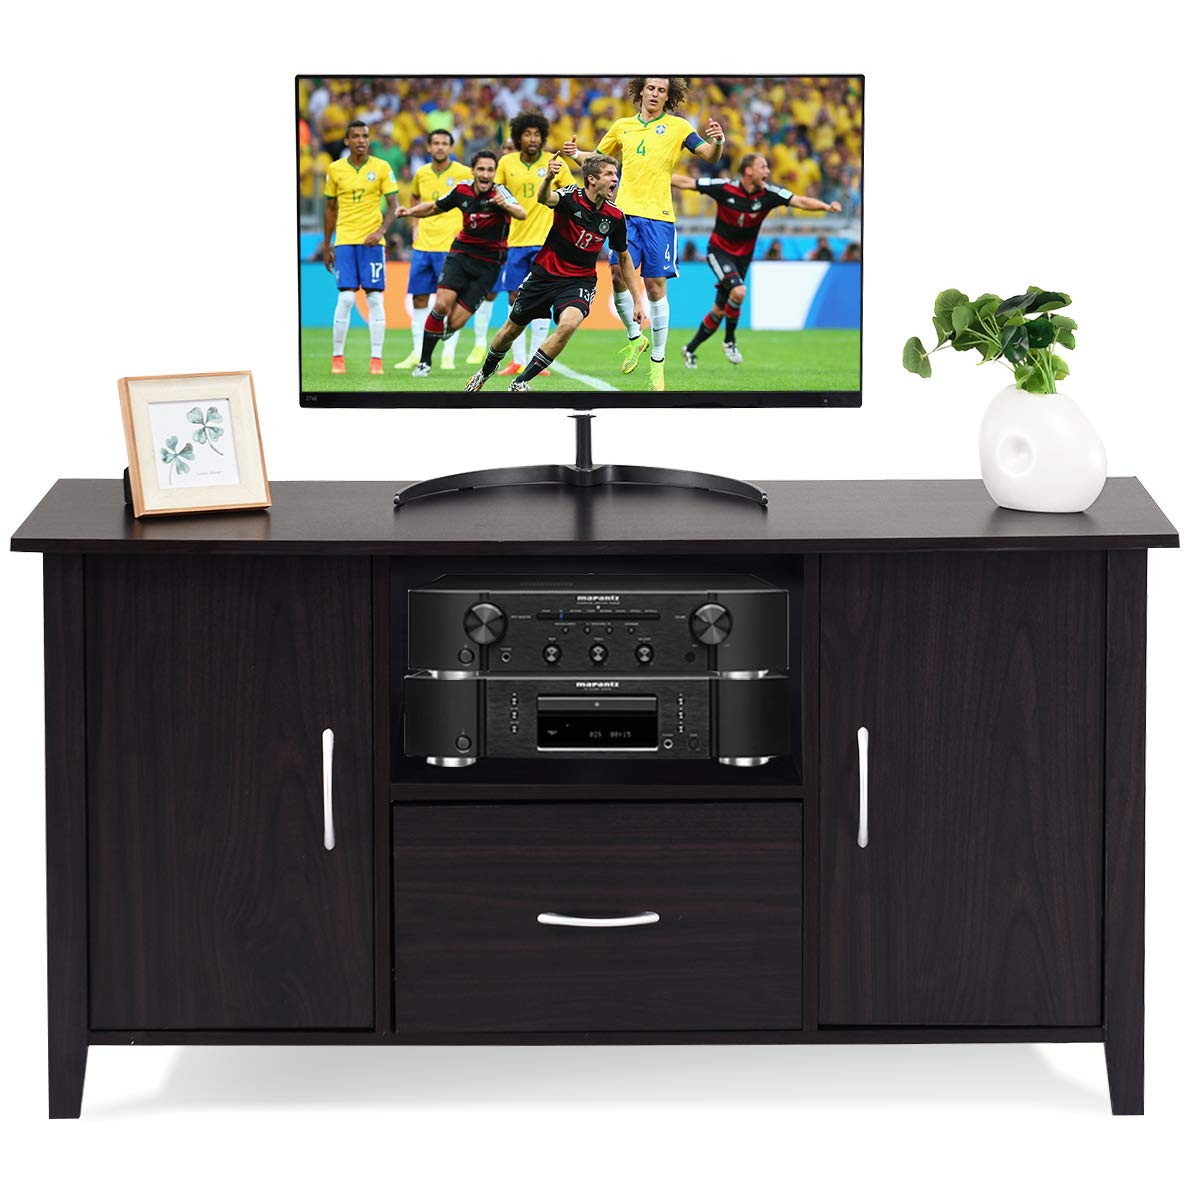 Amazon com tangkula modern tv stand wooden multipurpose home furniture storage console cabinet entertainment media center with shelf and drawer kitchen